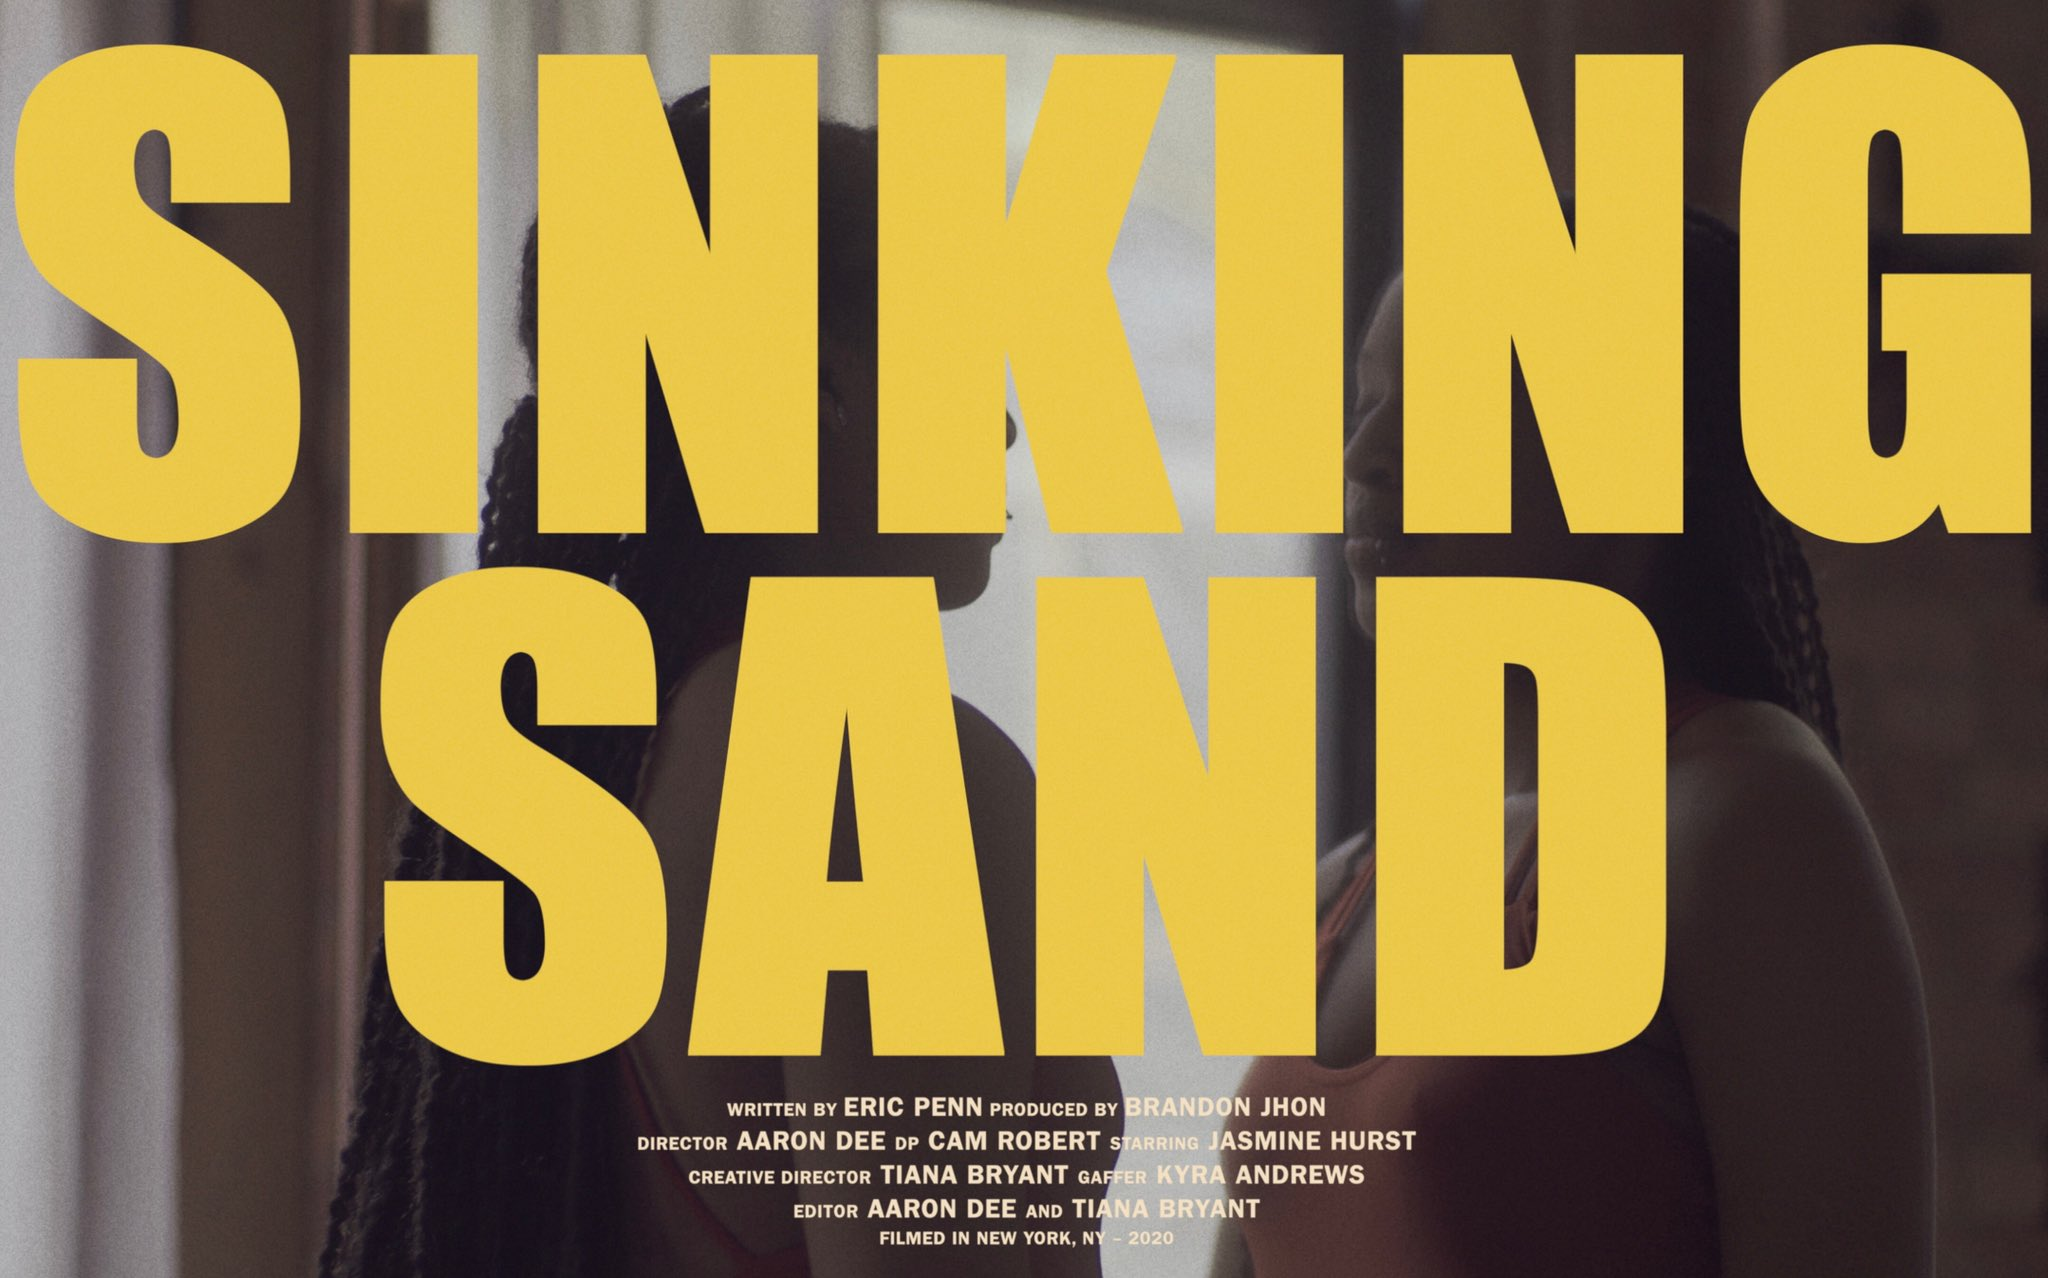 Eric Penn Sinking Sand music video